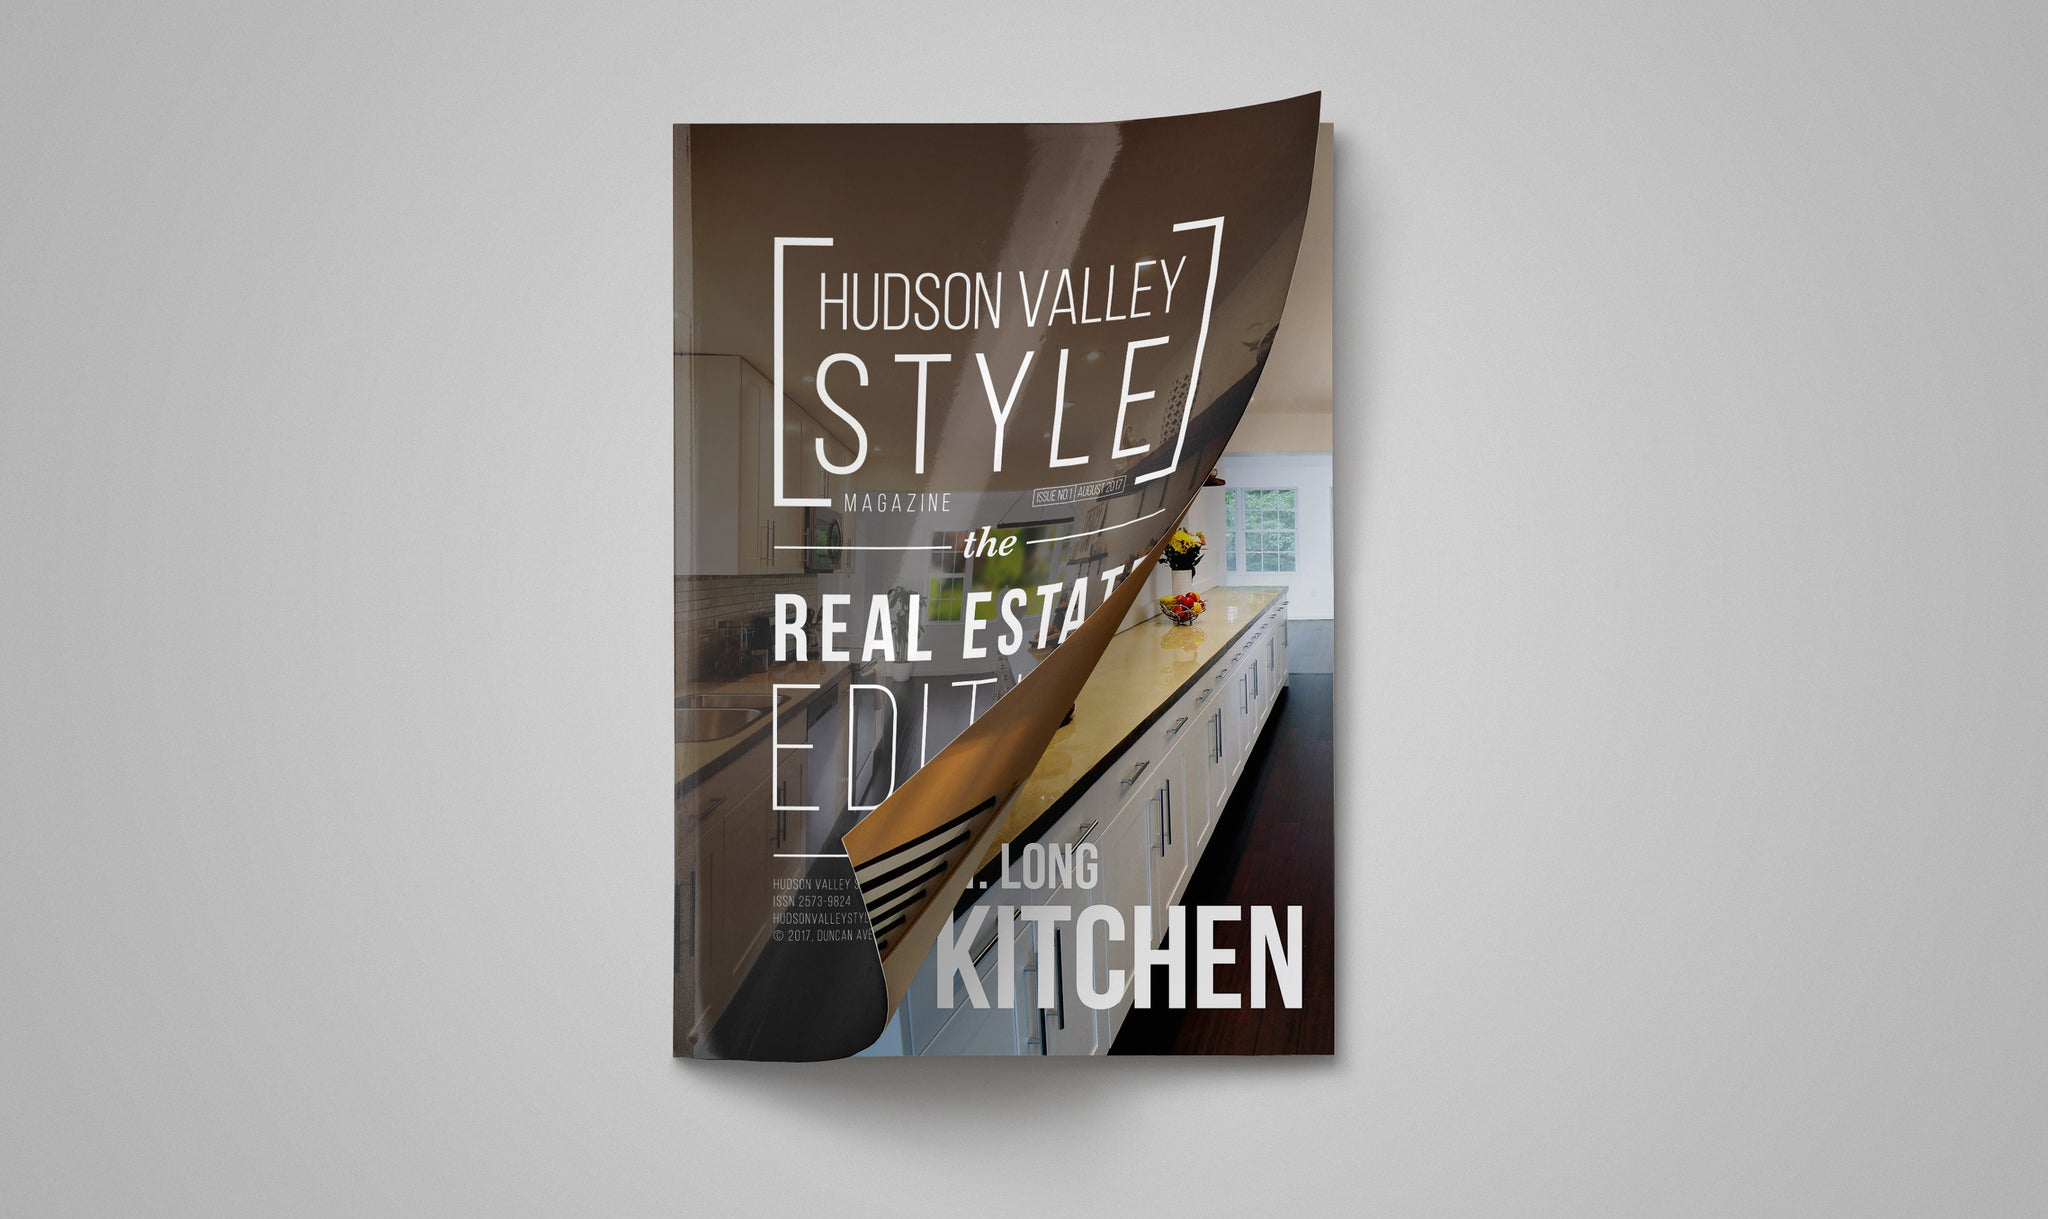 Hudson Valley Style Magazine - Issue No.1 - The Real Estate Edition